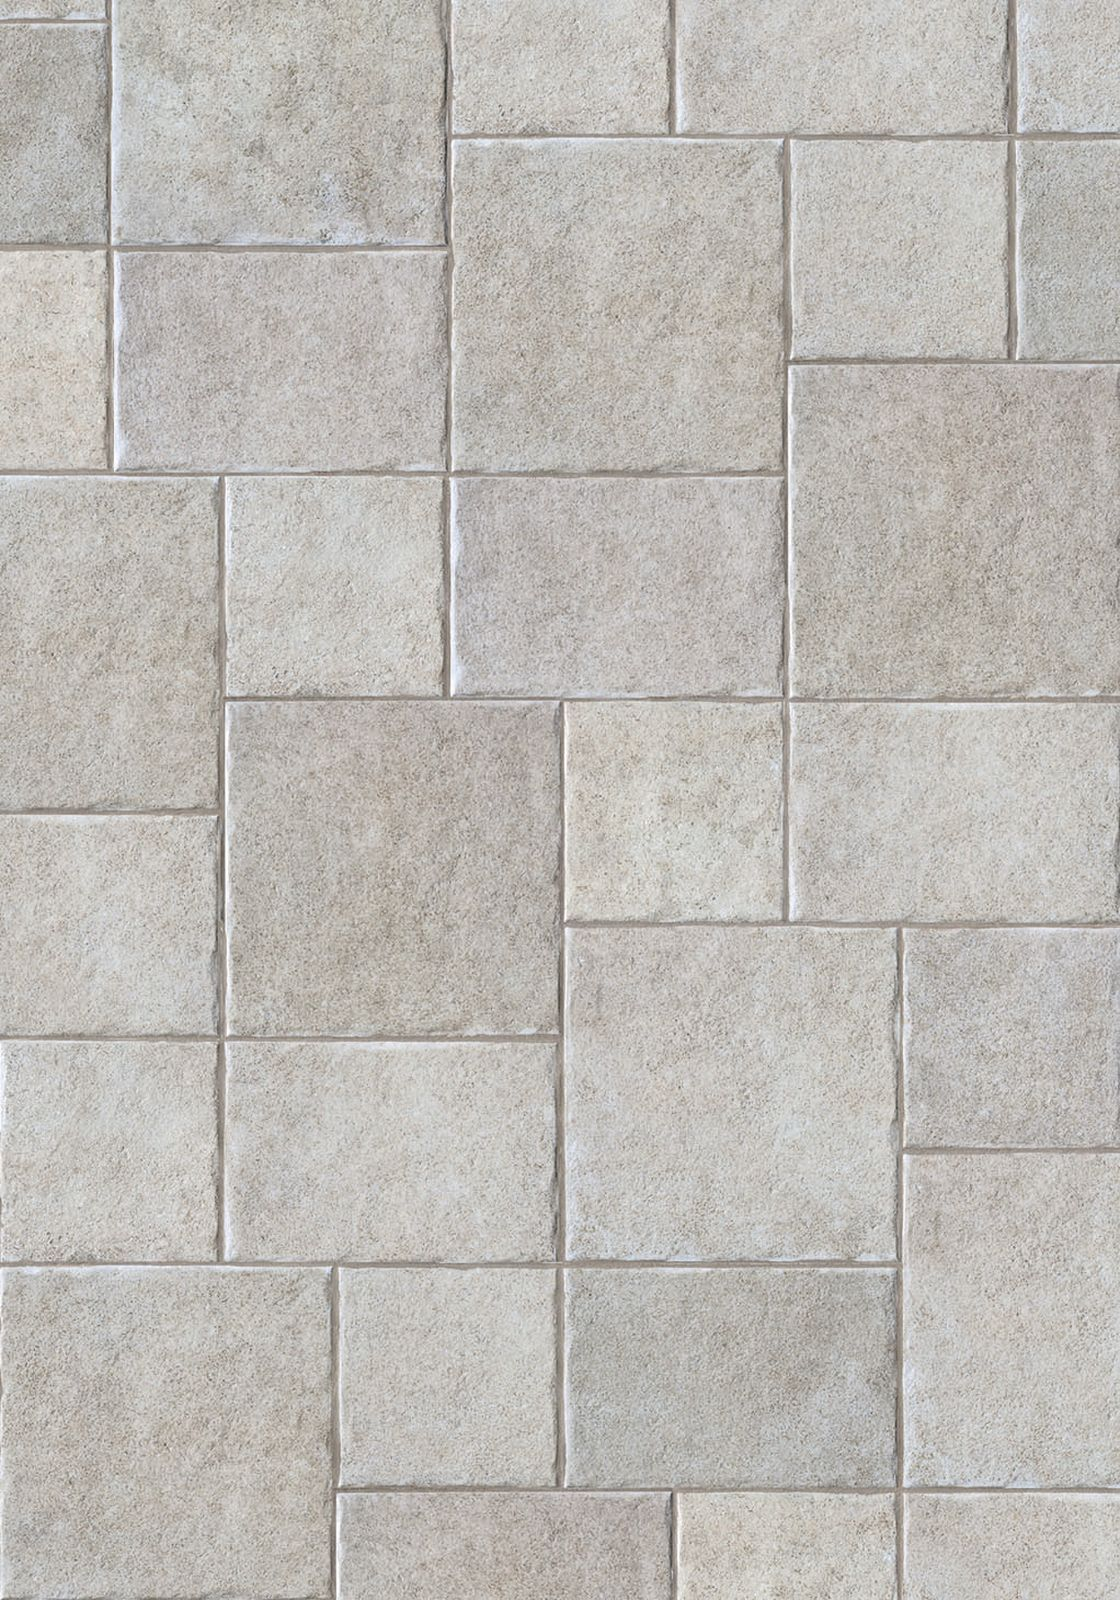 How To Tile A Floor >> SETTECENTO - MANIFATTURA CERAMICA. Floor and wall ceramic